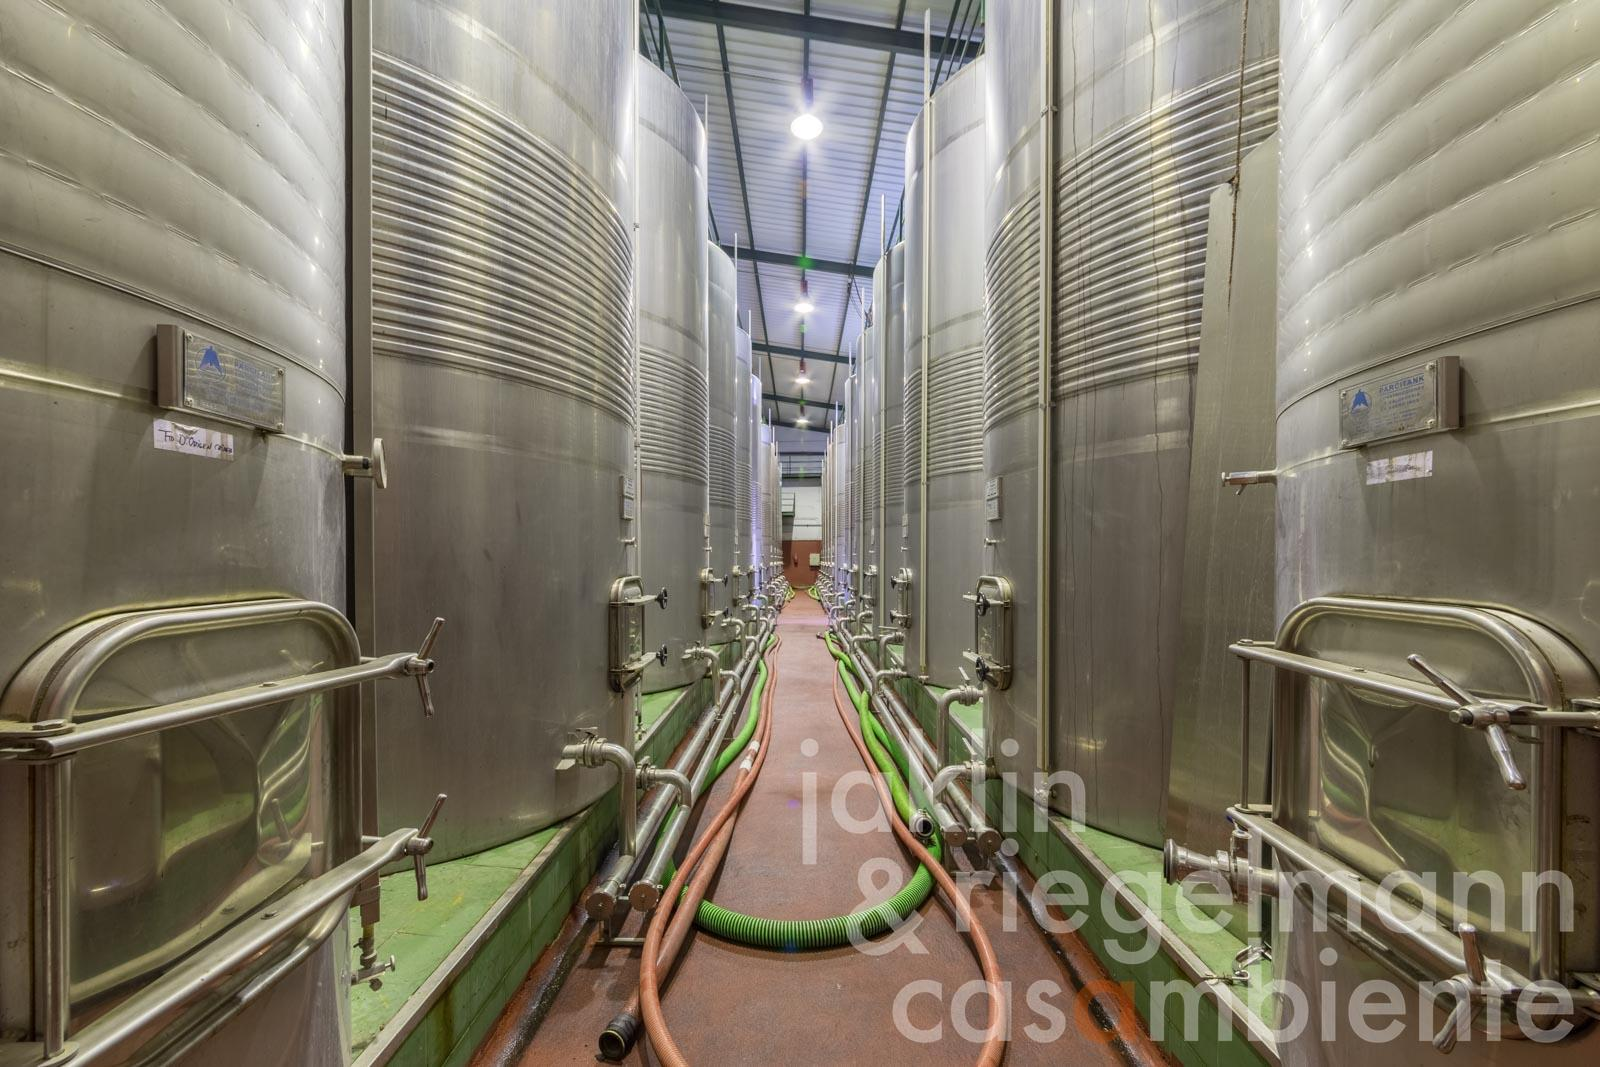 The Spanish winery for sale DO Vinos de Madrid 30 km from the centre of Madrid